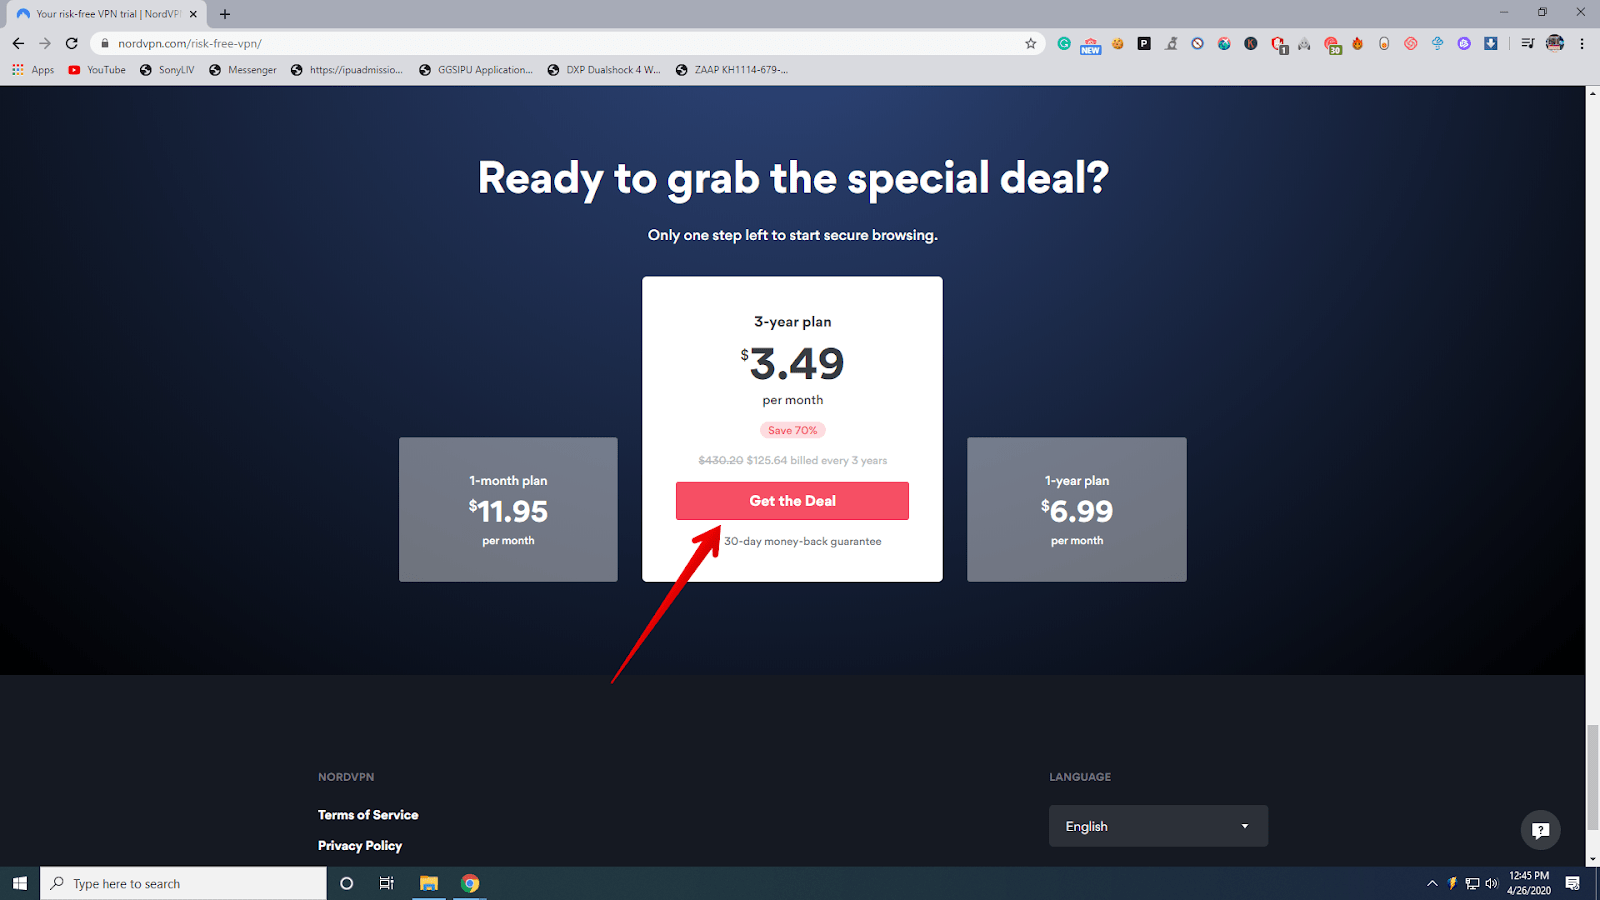 Nord VPN plans and pricing